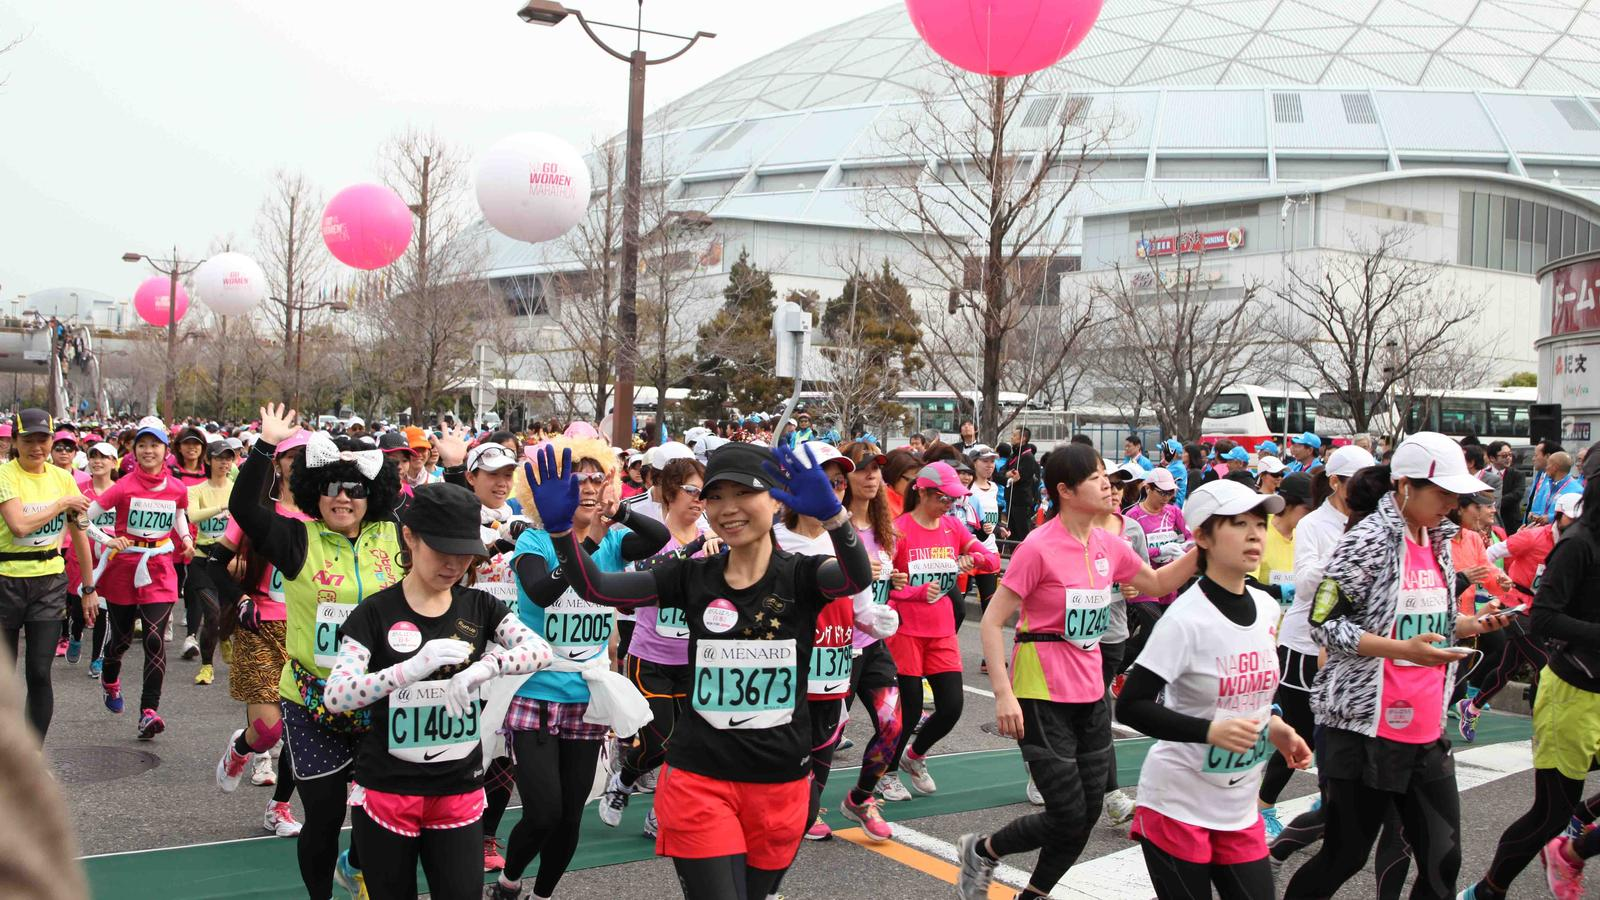 Nike News - Thousands of runners take to streets in Nike